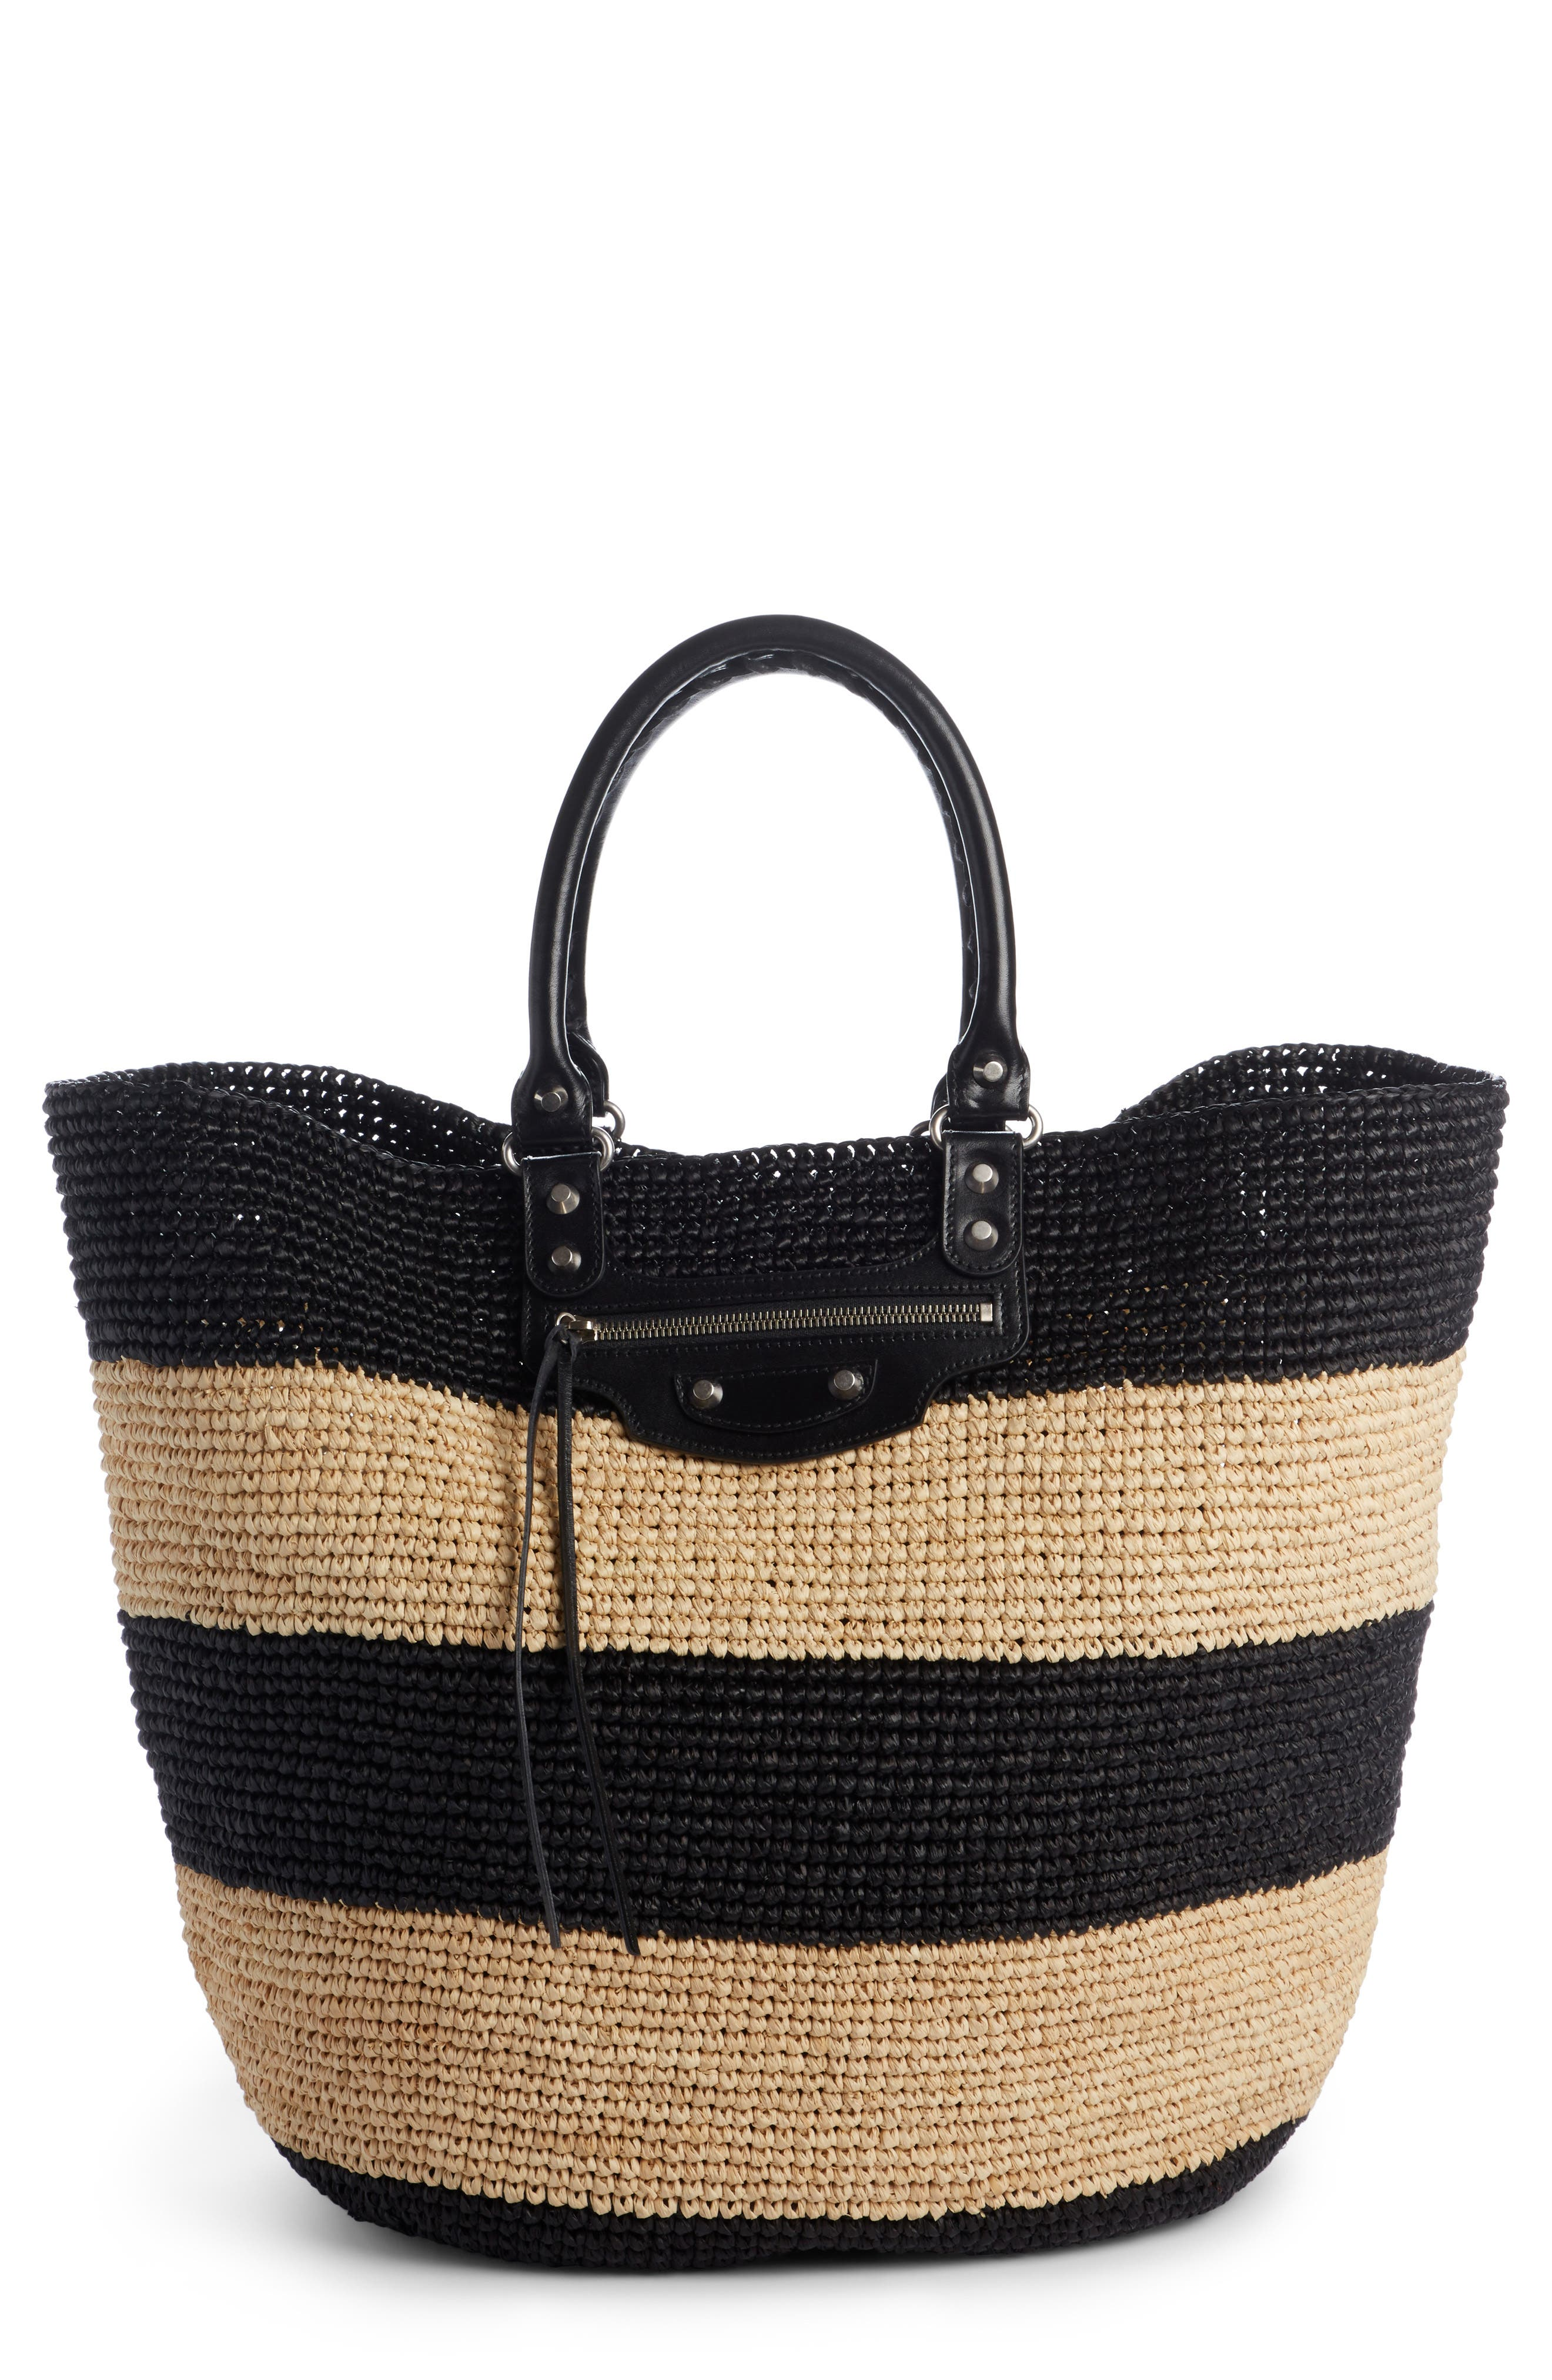 Large Panier Woven Tote with Calfskin Leather Trim,                             Main thumbnail 1, color,                             250